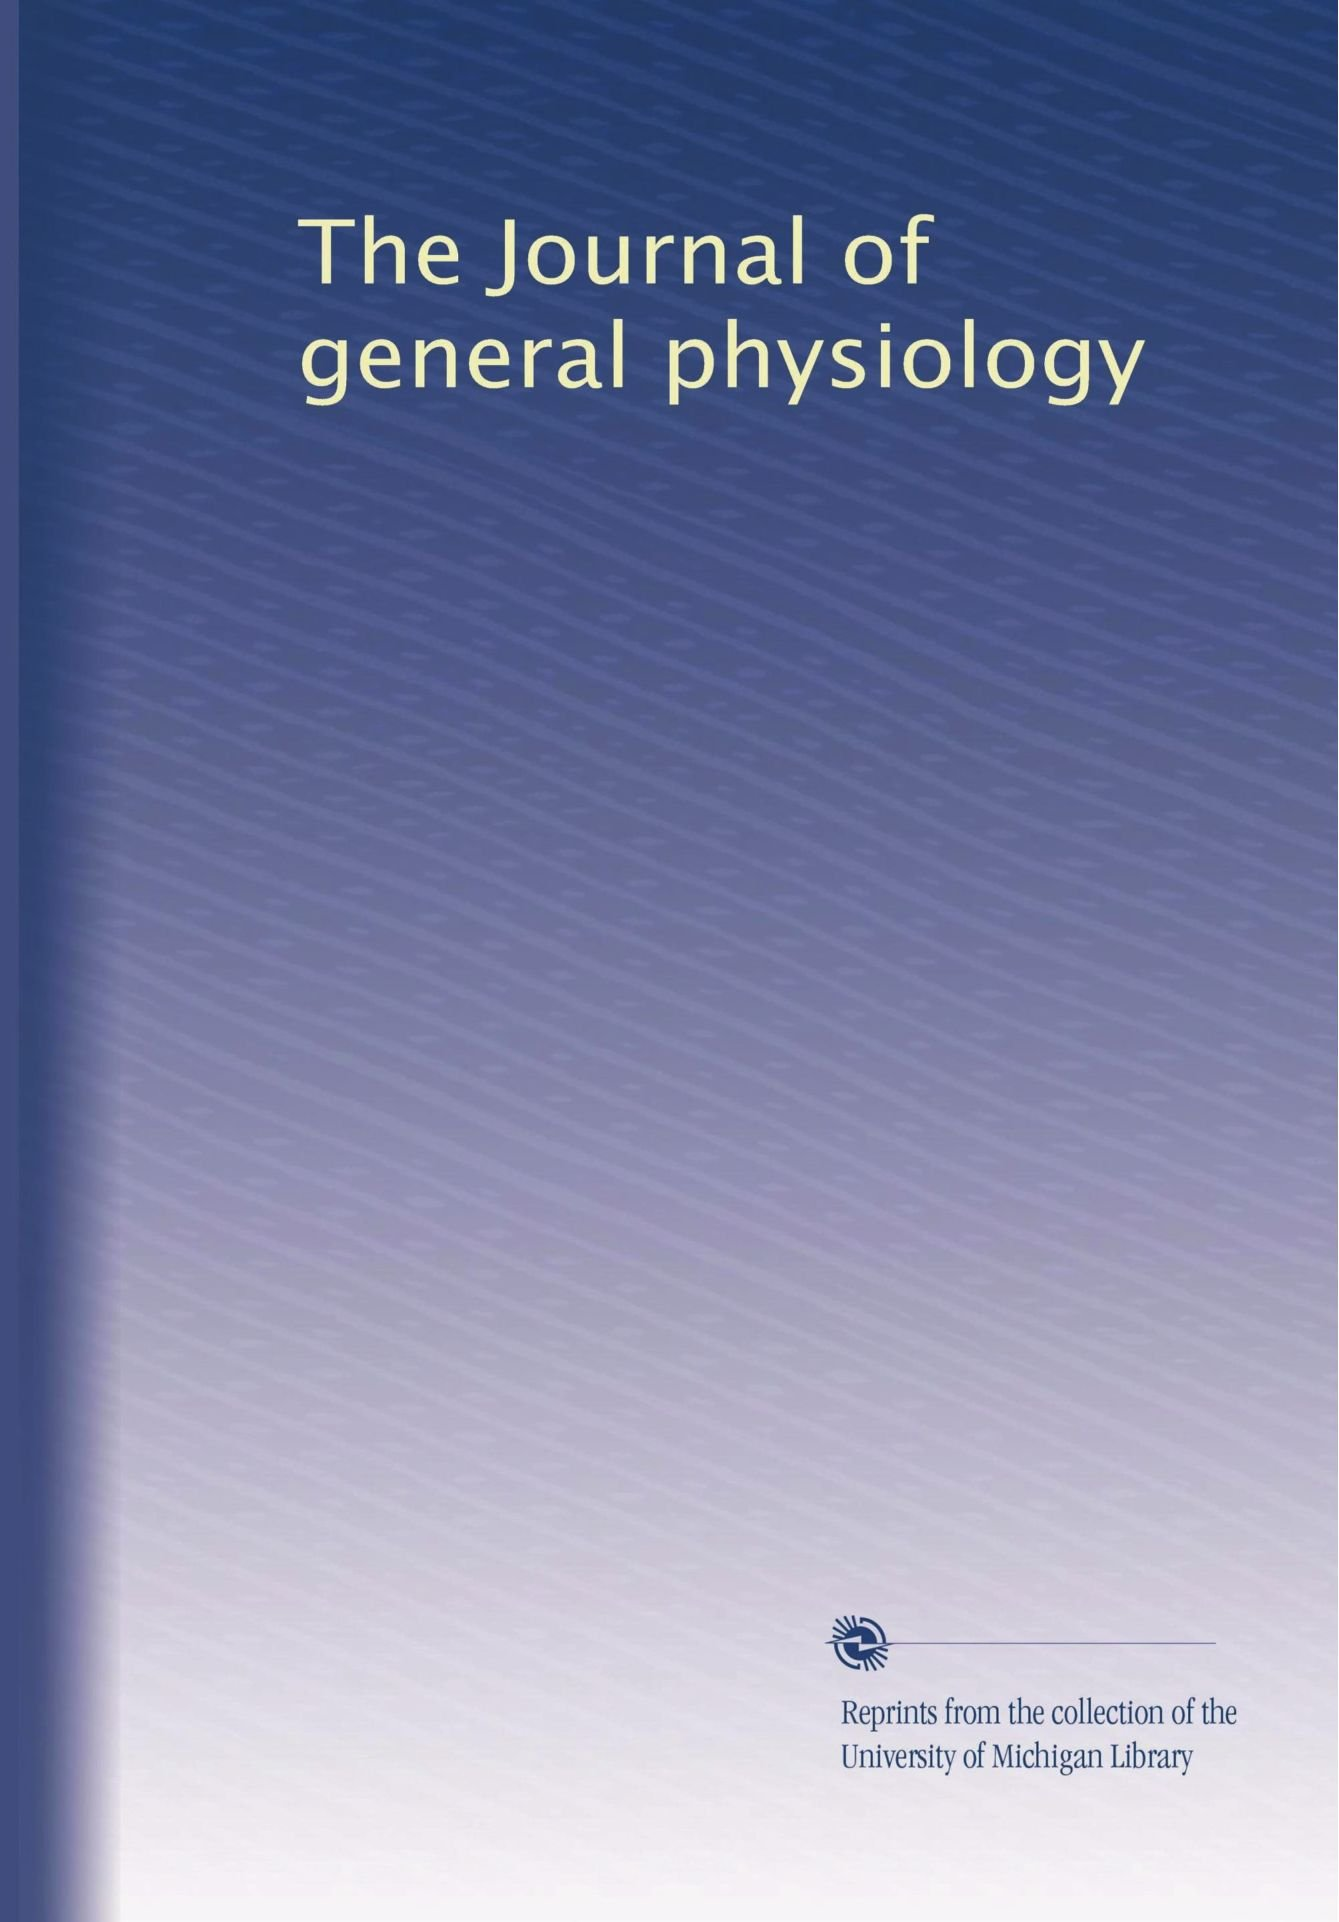 Download The Journal of general physiology (Volume 3) pdf